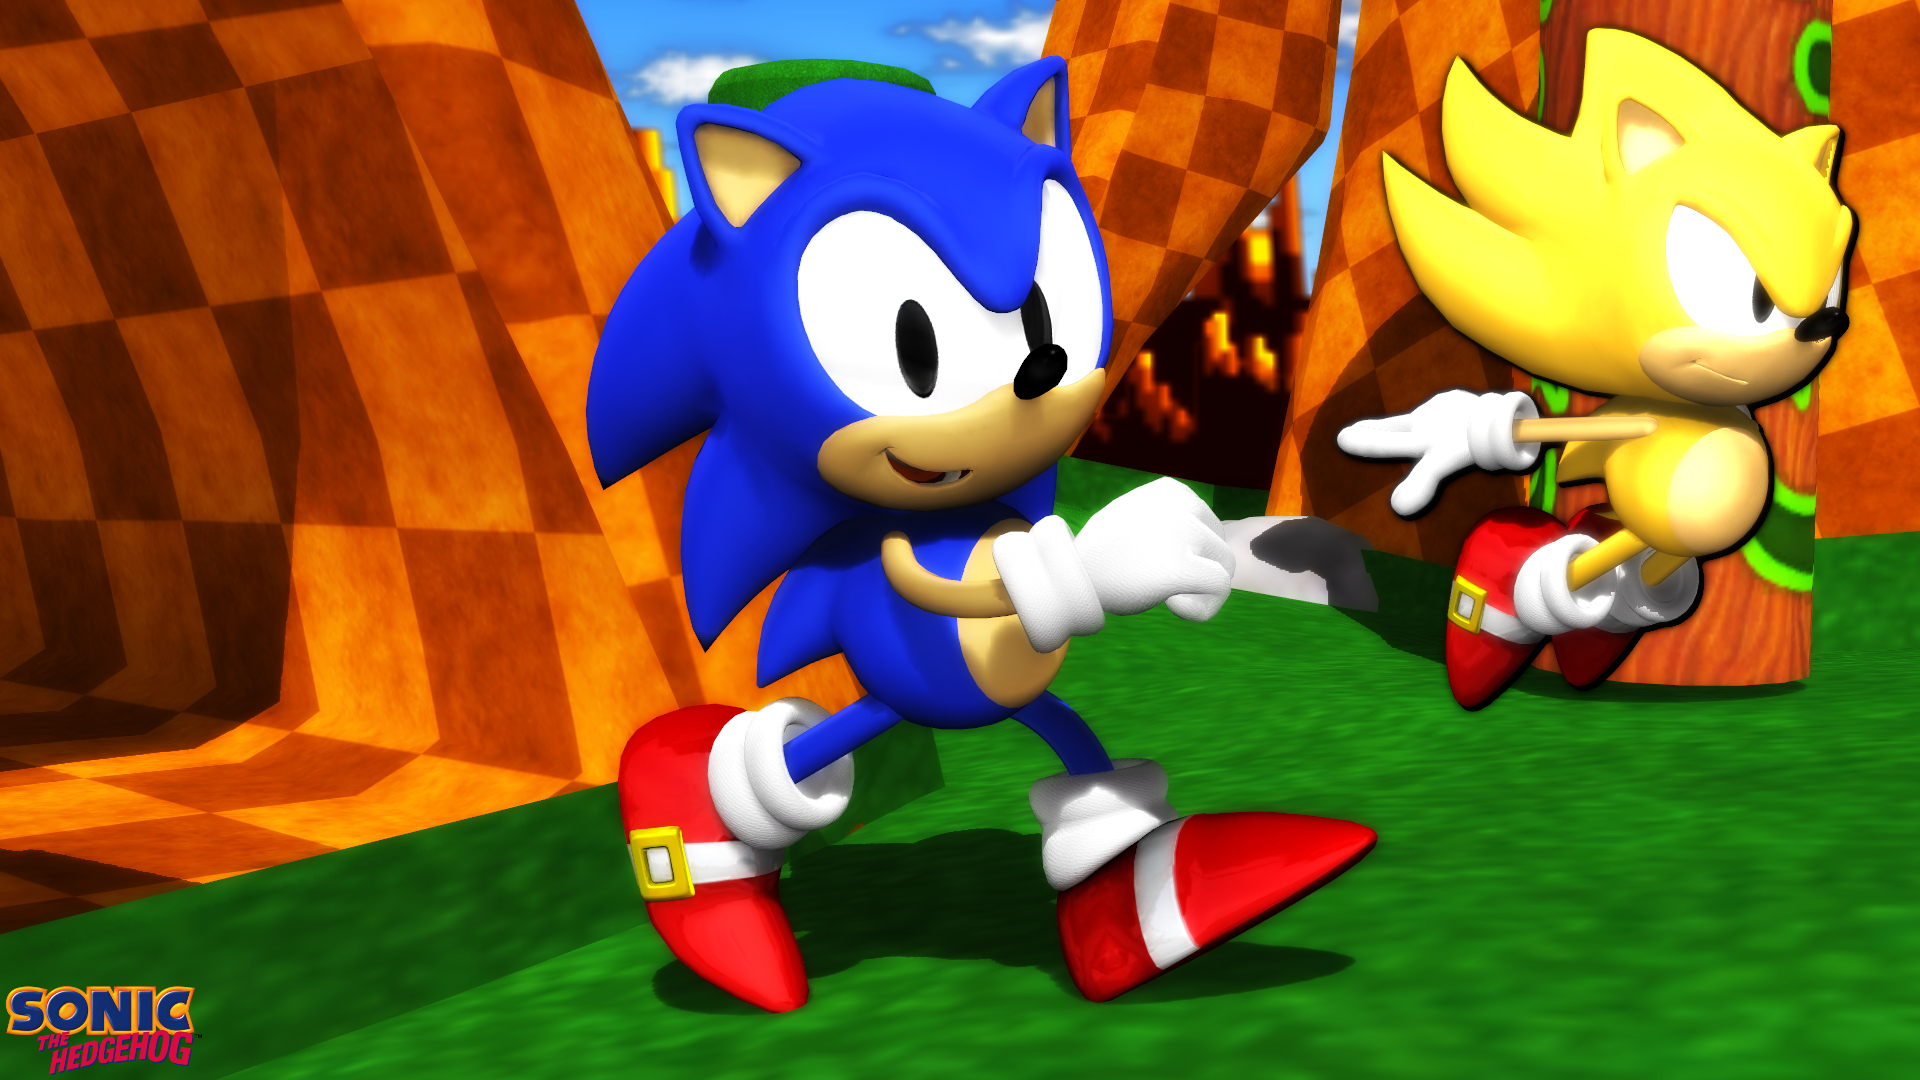 Mmd Model Sonic The Hedgehog Classic Download By Sab64 On Deviantart